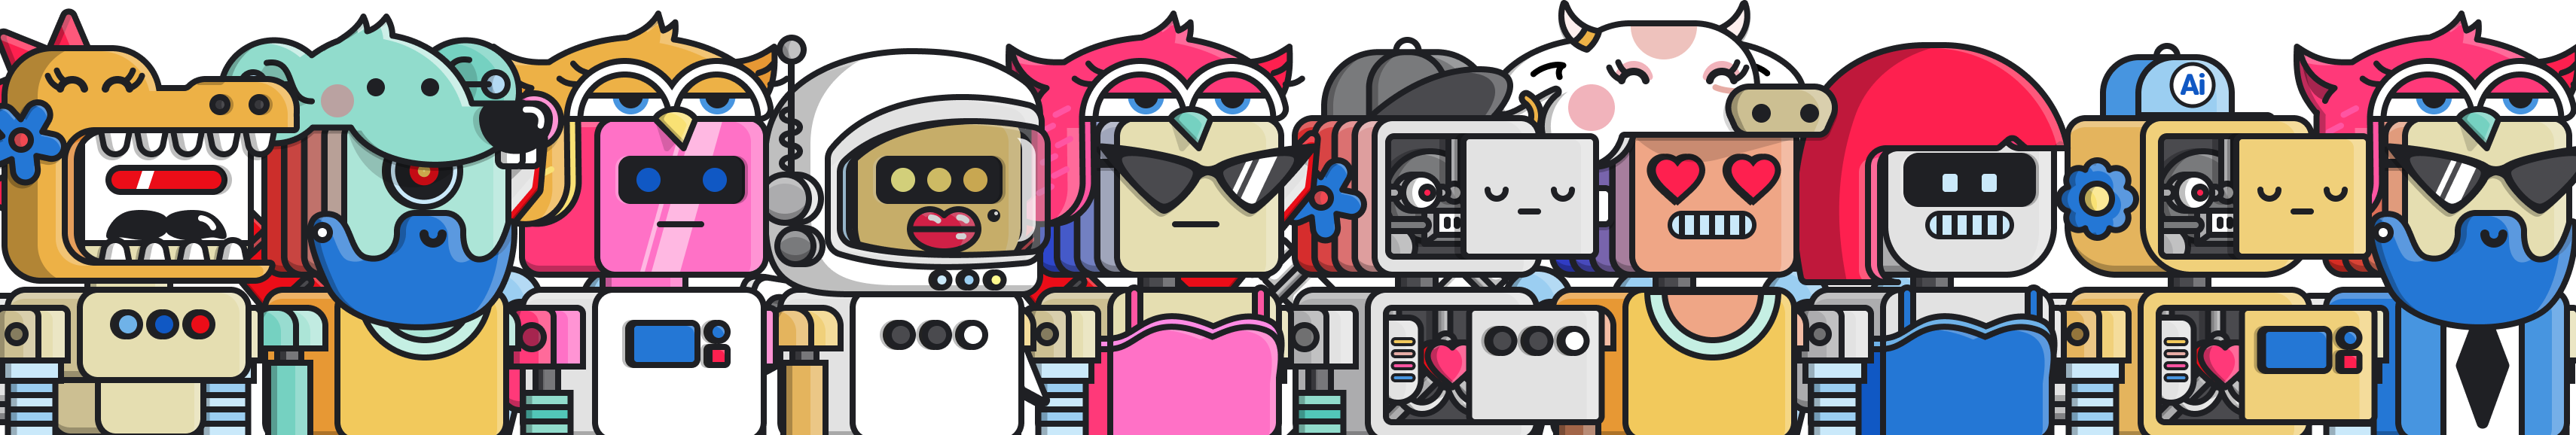 Discovery of the Day - Robotos Banner